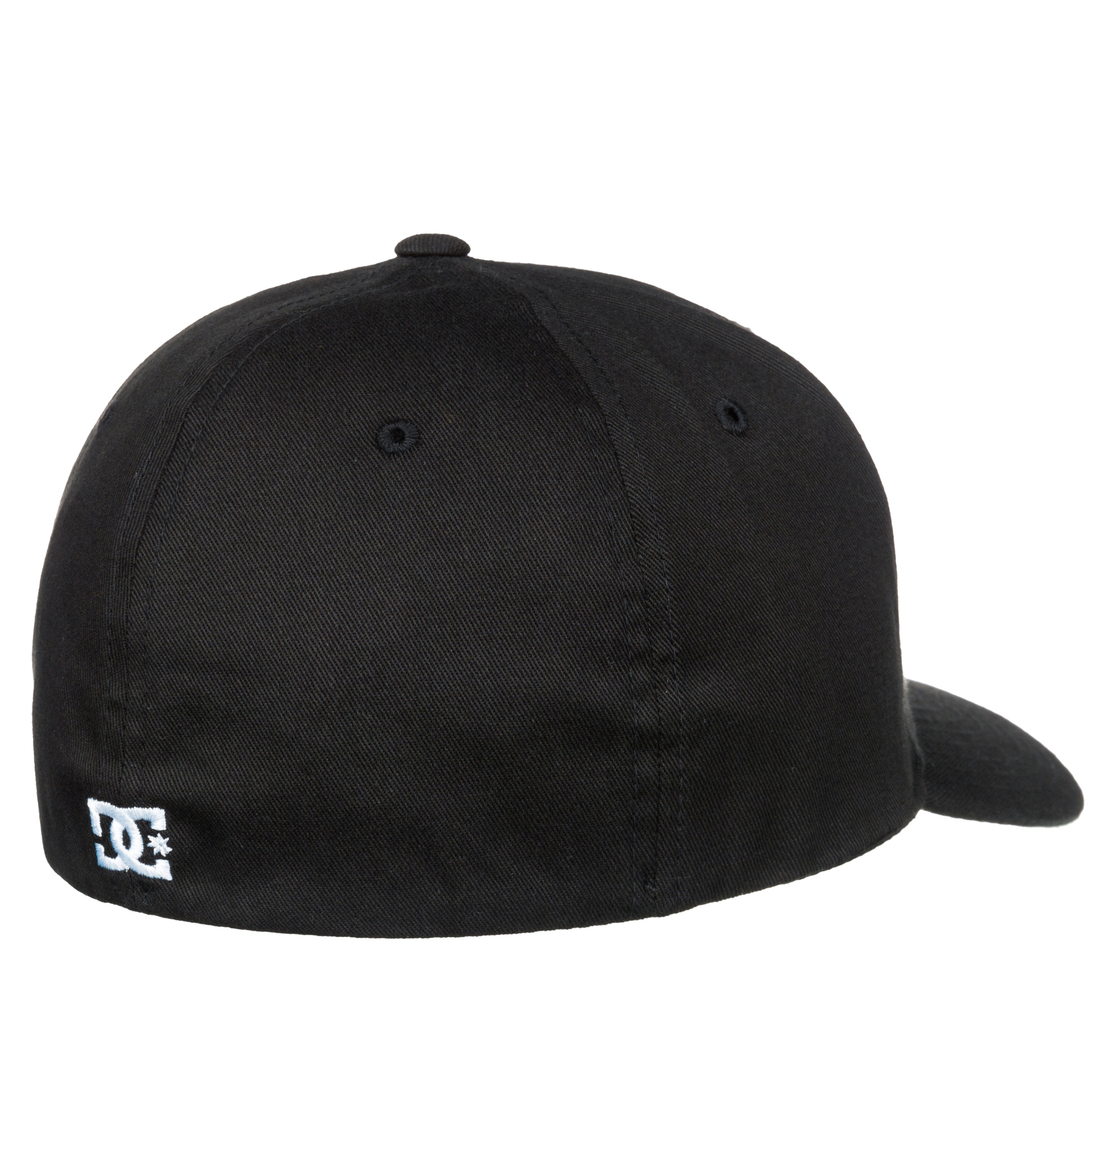 16a5b9955188b 3 Cap Star 2 Flexfit Hat Black 55300096 DC Shoes